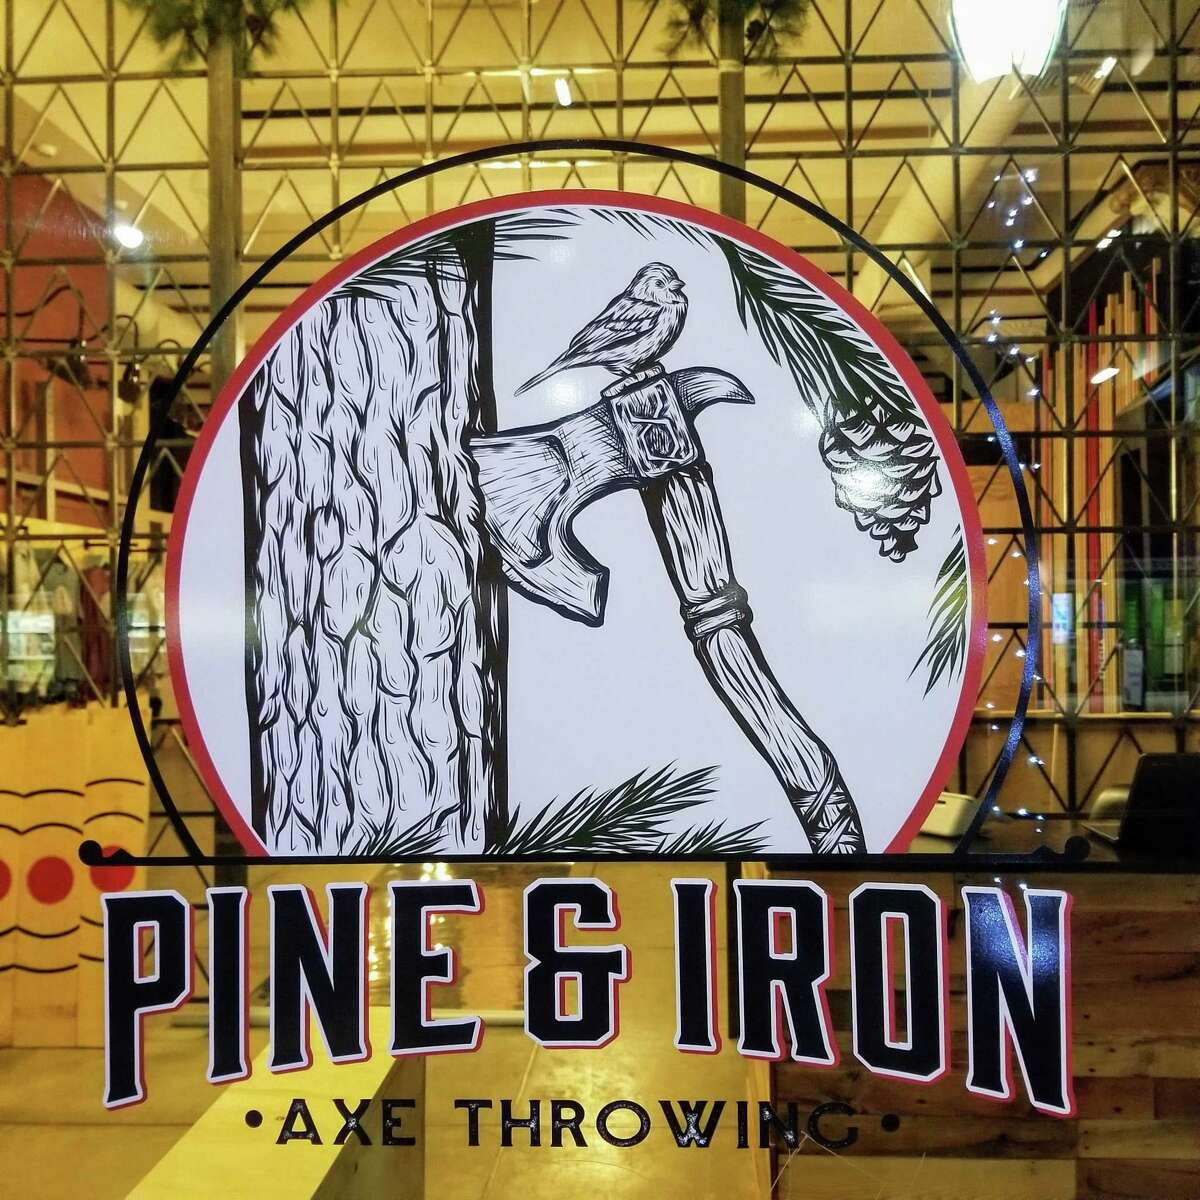 Pine & Iron offers ax-throwing lessons and sessions in New Haven.